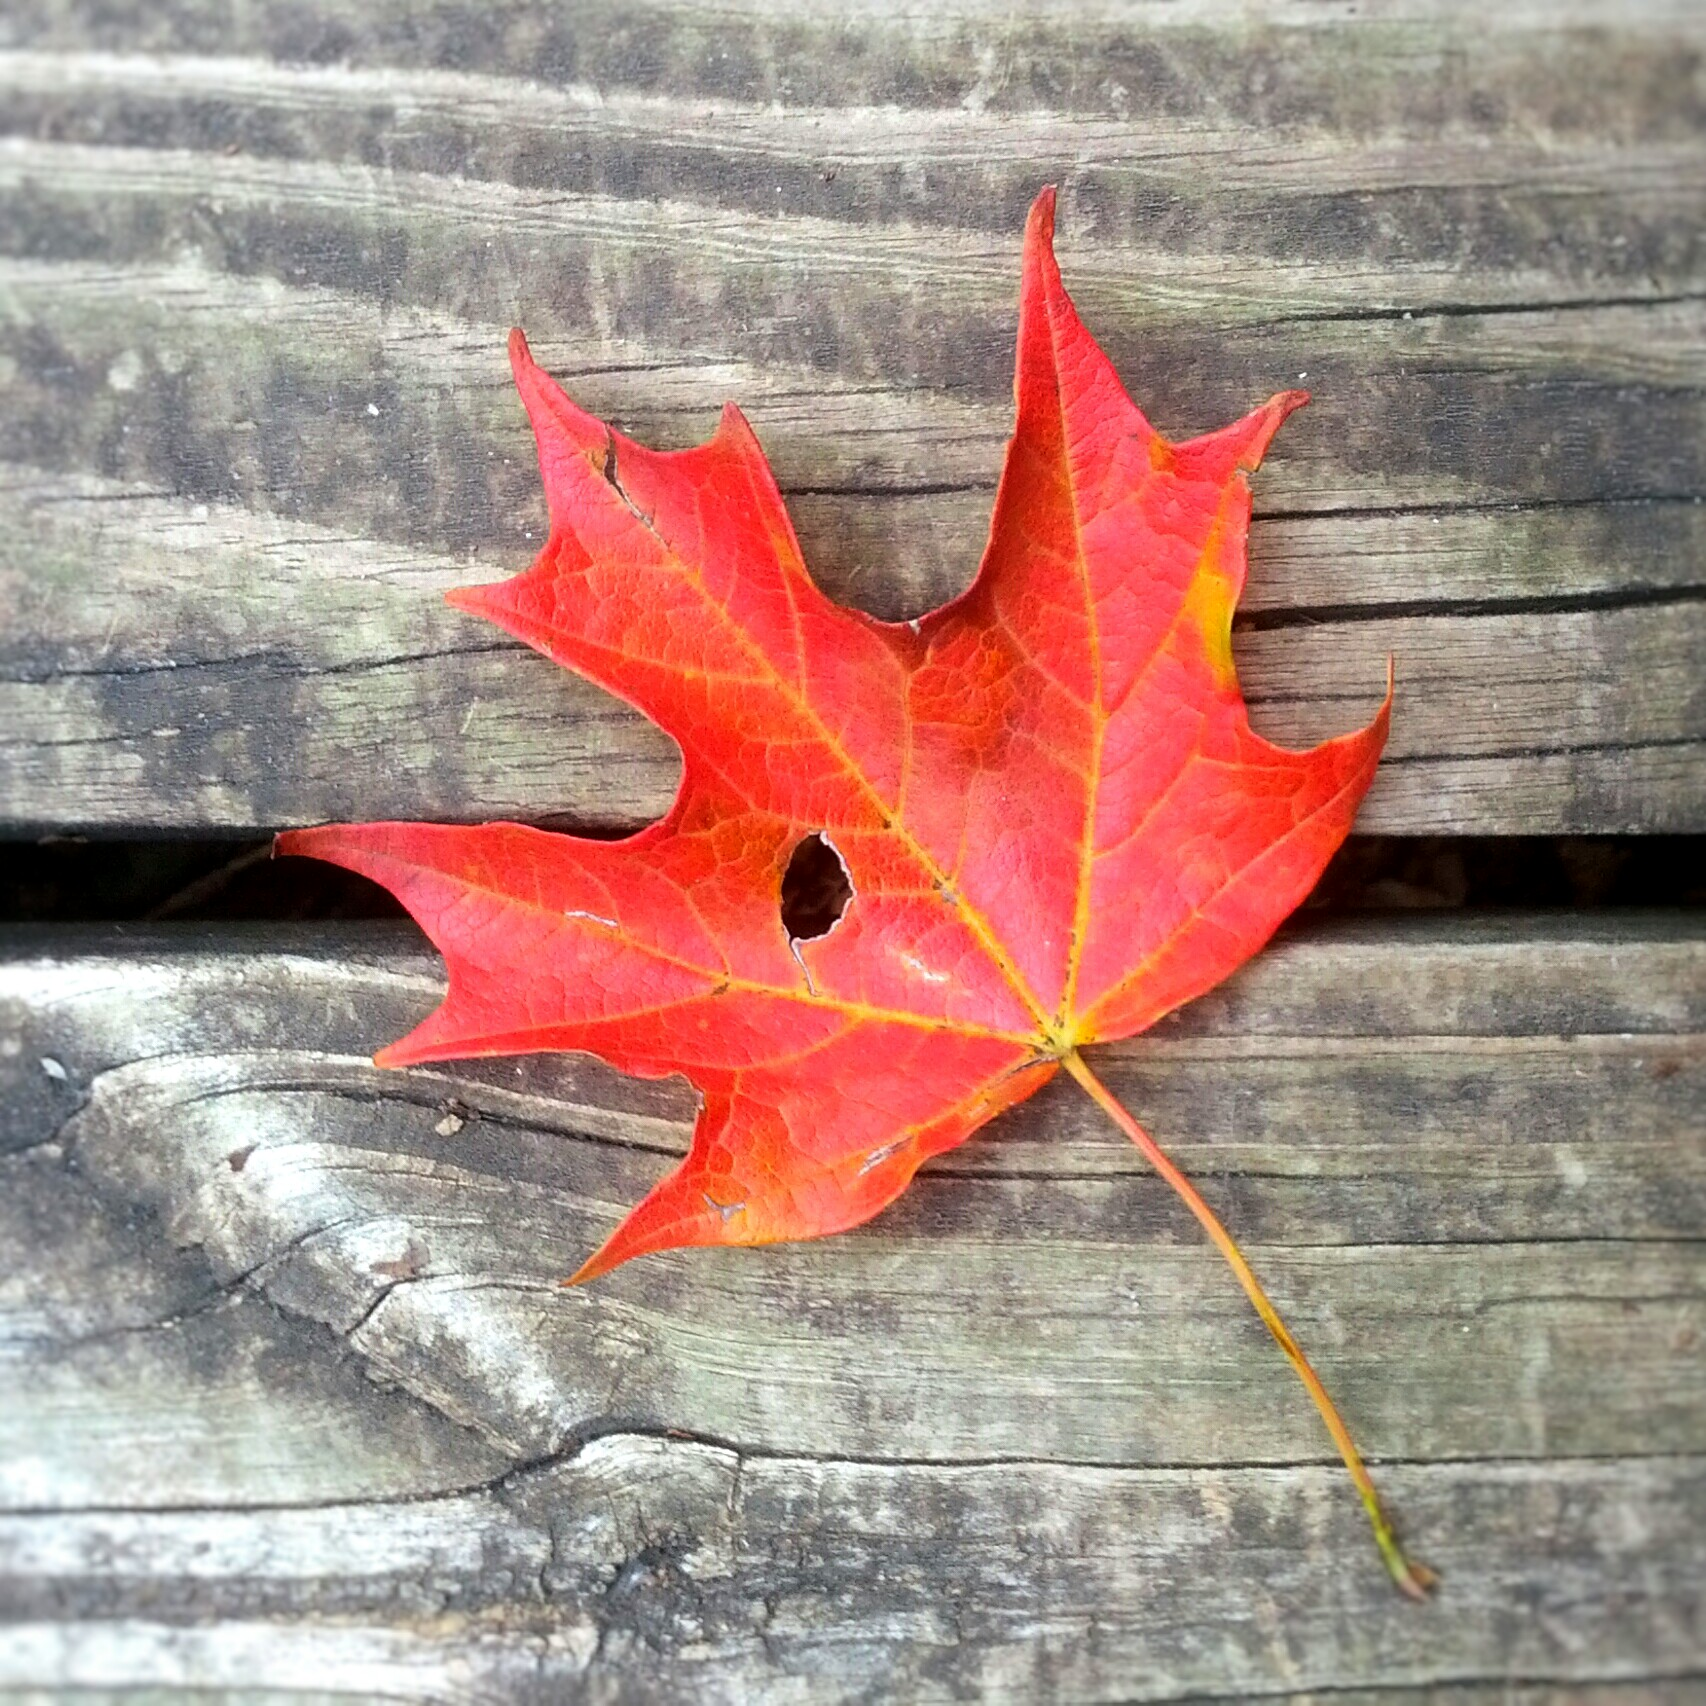 Fall Red Maple Leaf on Weathered Wood Background. Nature in autumn. Art photography. By Shalom Schultz Designs.